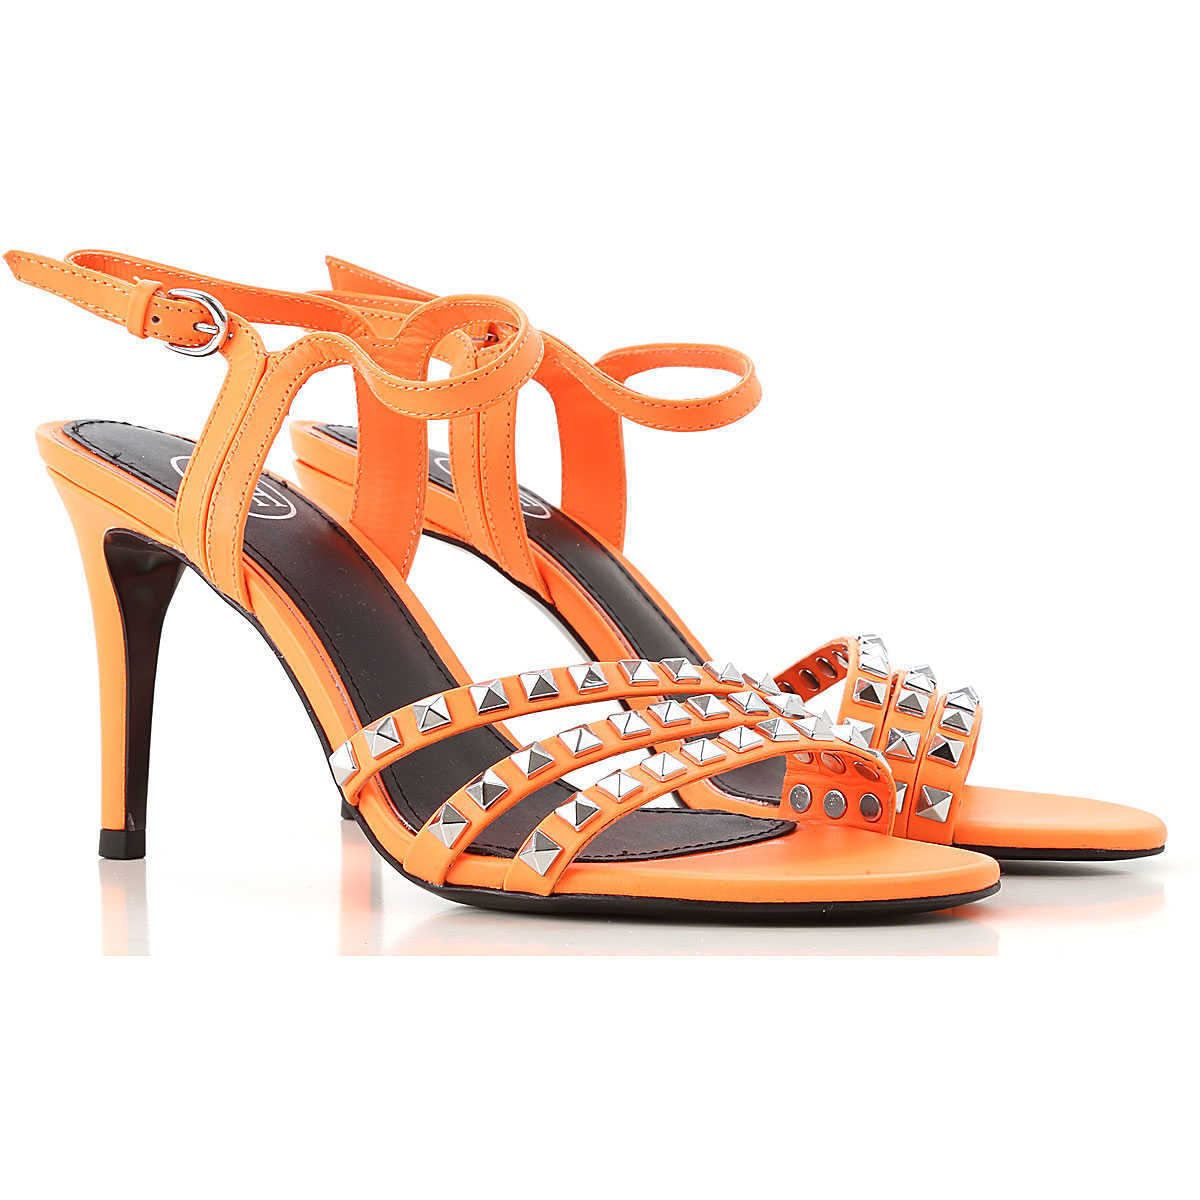 Ash Sandals for Women On Sale Orange - GOOFASH